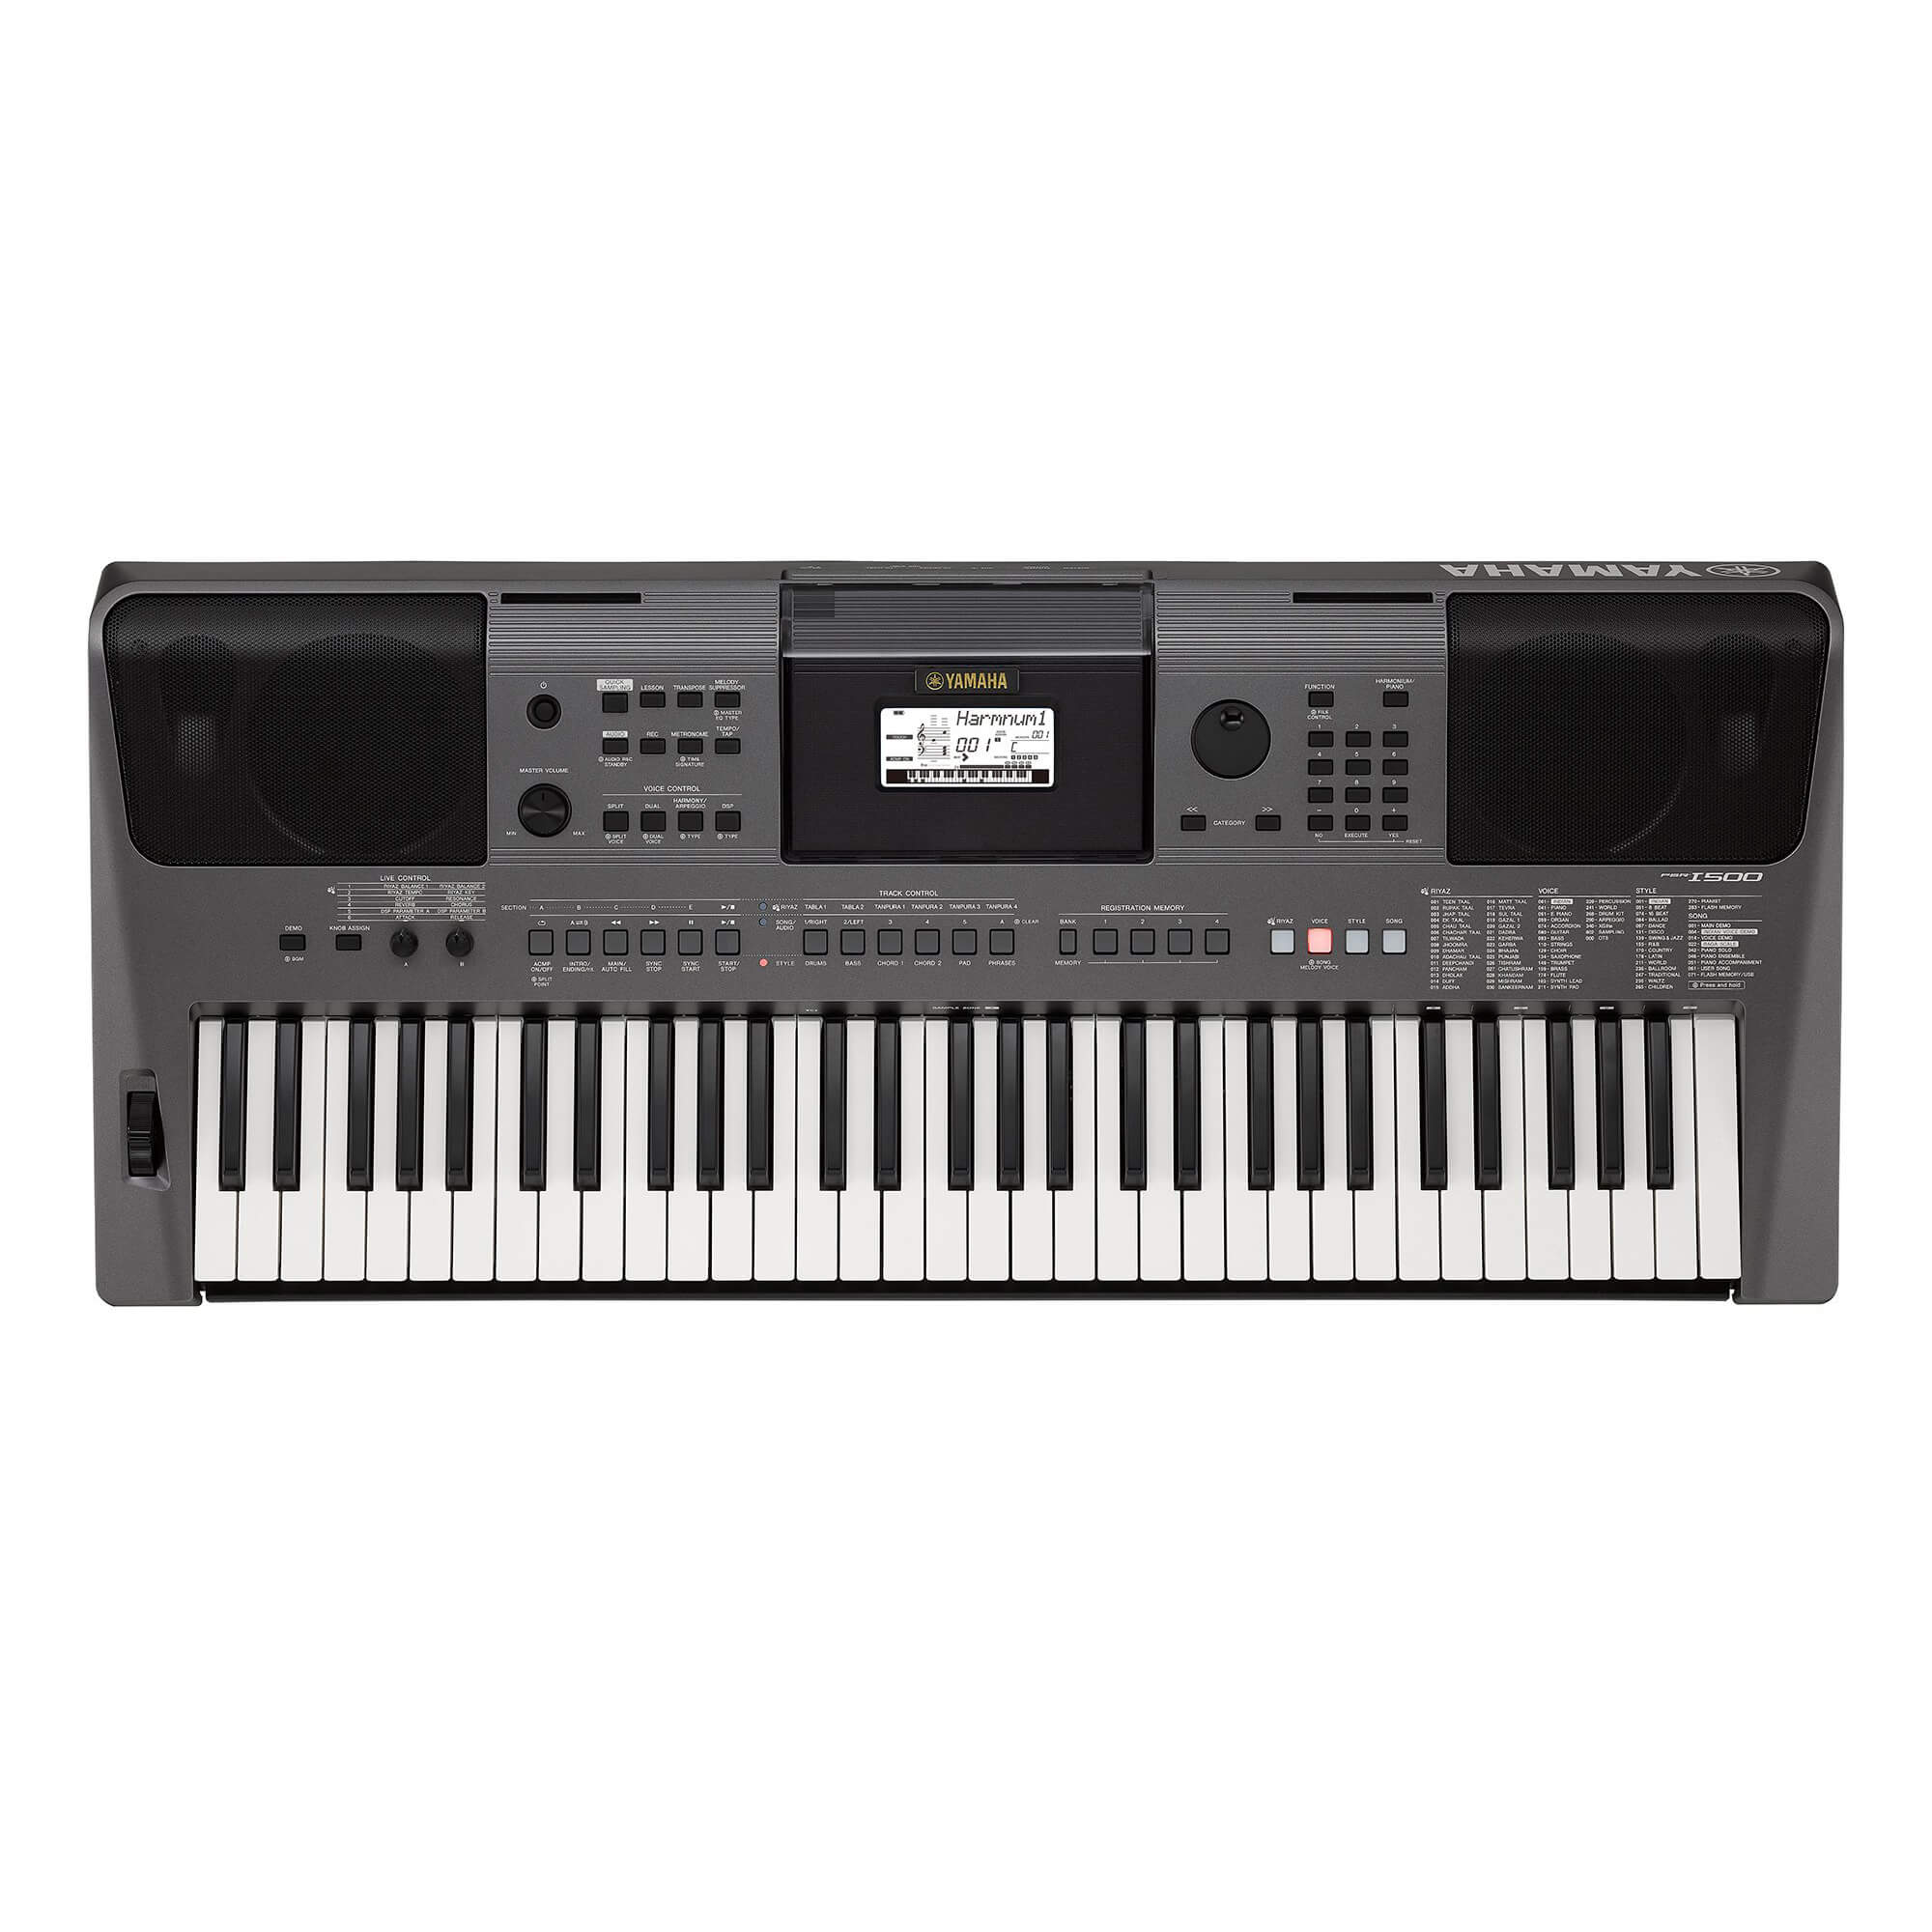 Yamaha PSR I500 Digital Keyboard